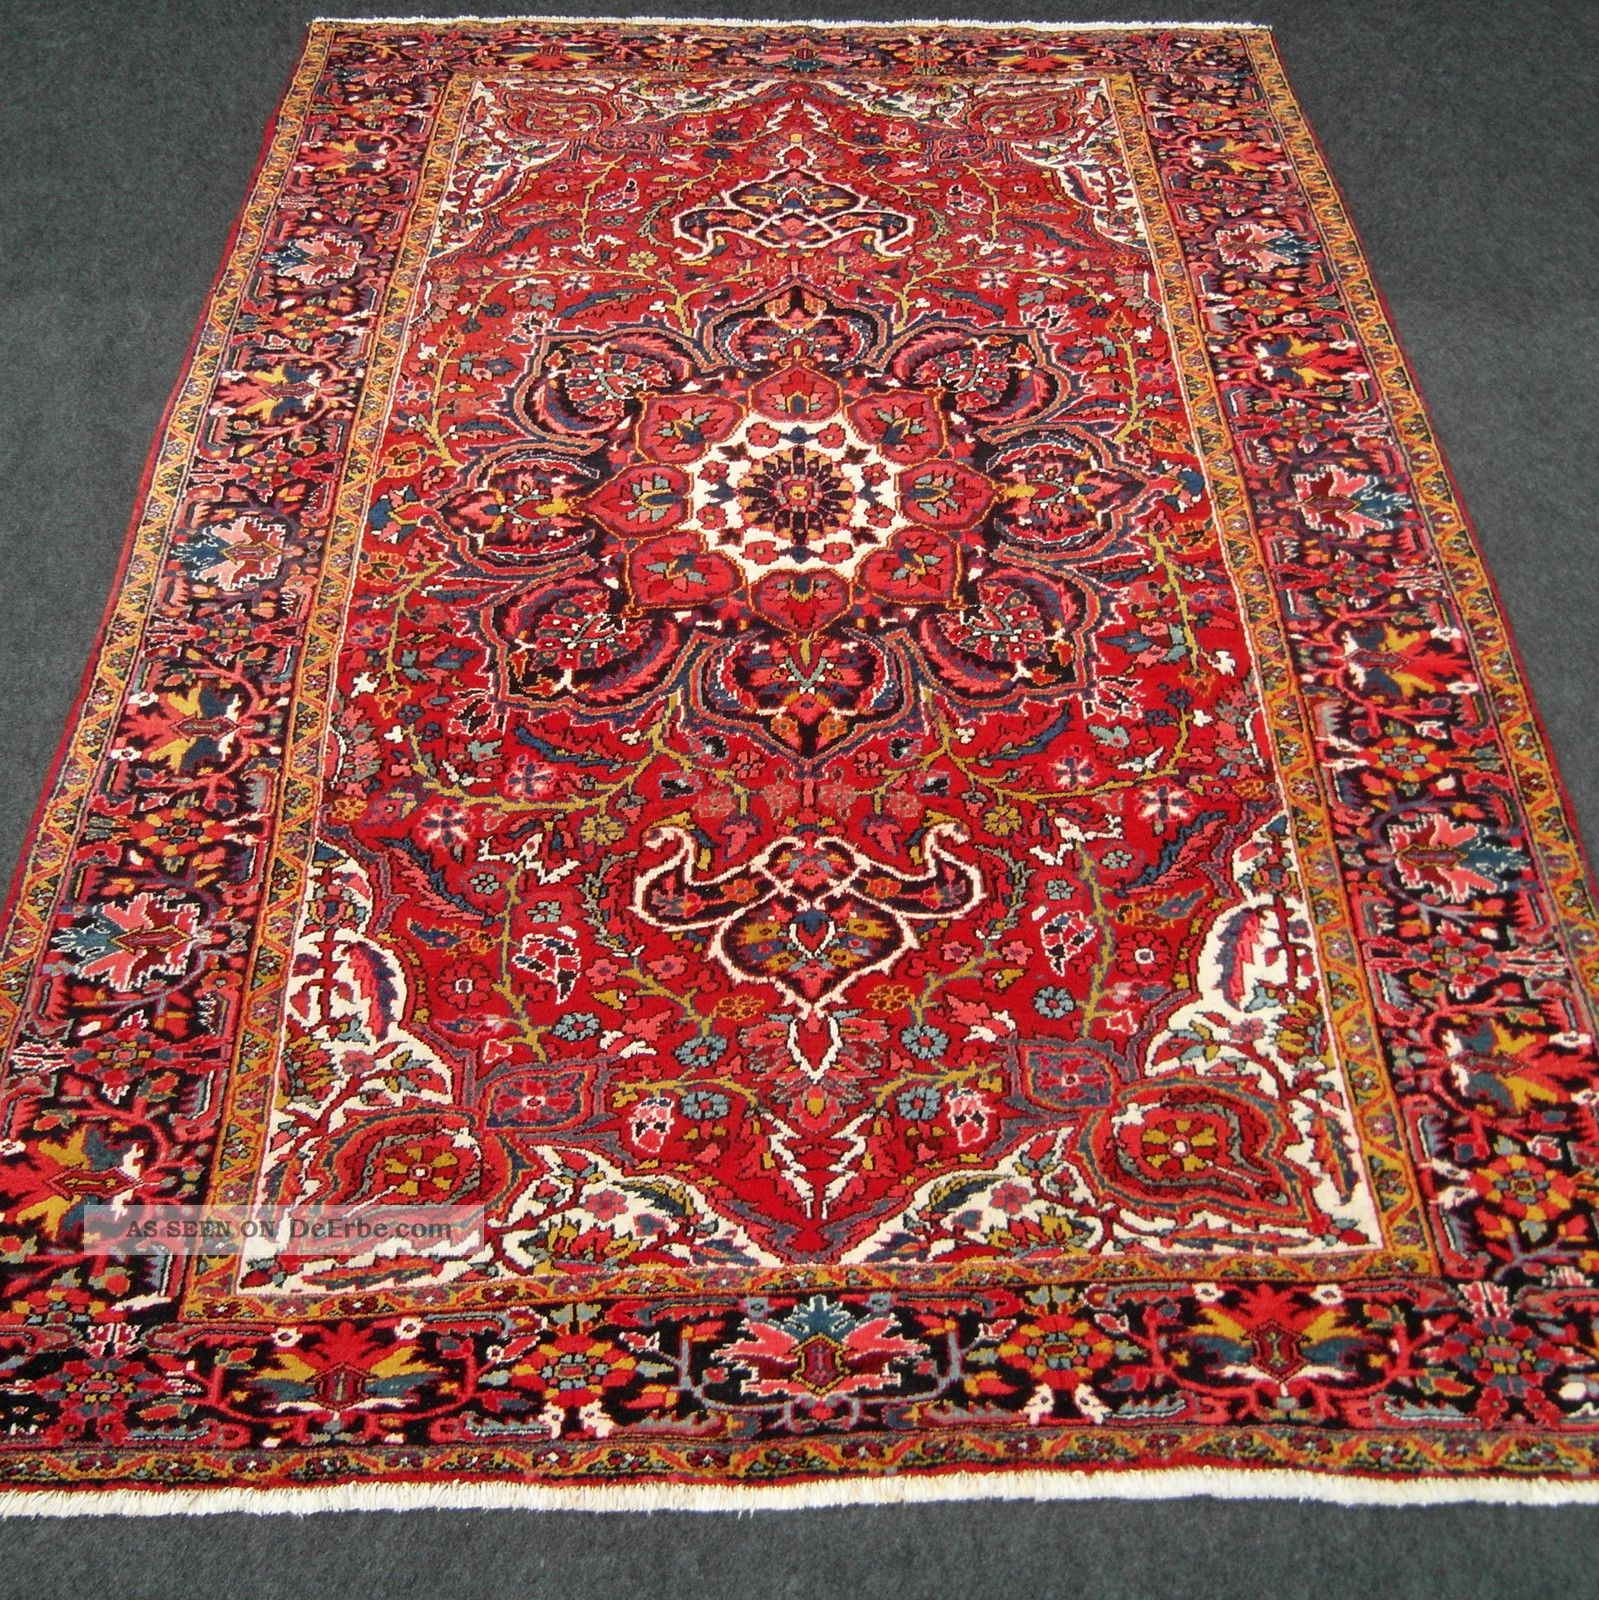 orient teppich rot beige floral 369 x 260 cm medaillon perserteppich old carpet. Black Bedroom Furniture Sets. Home Design Ideas